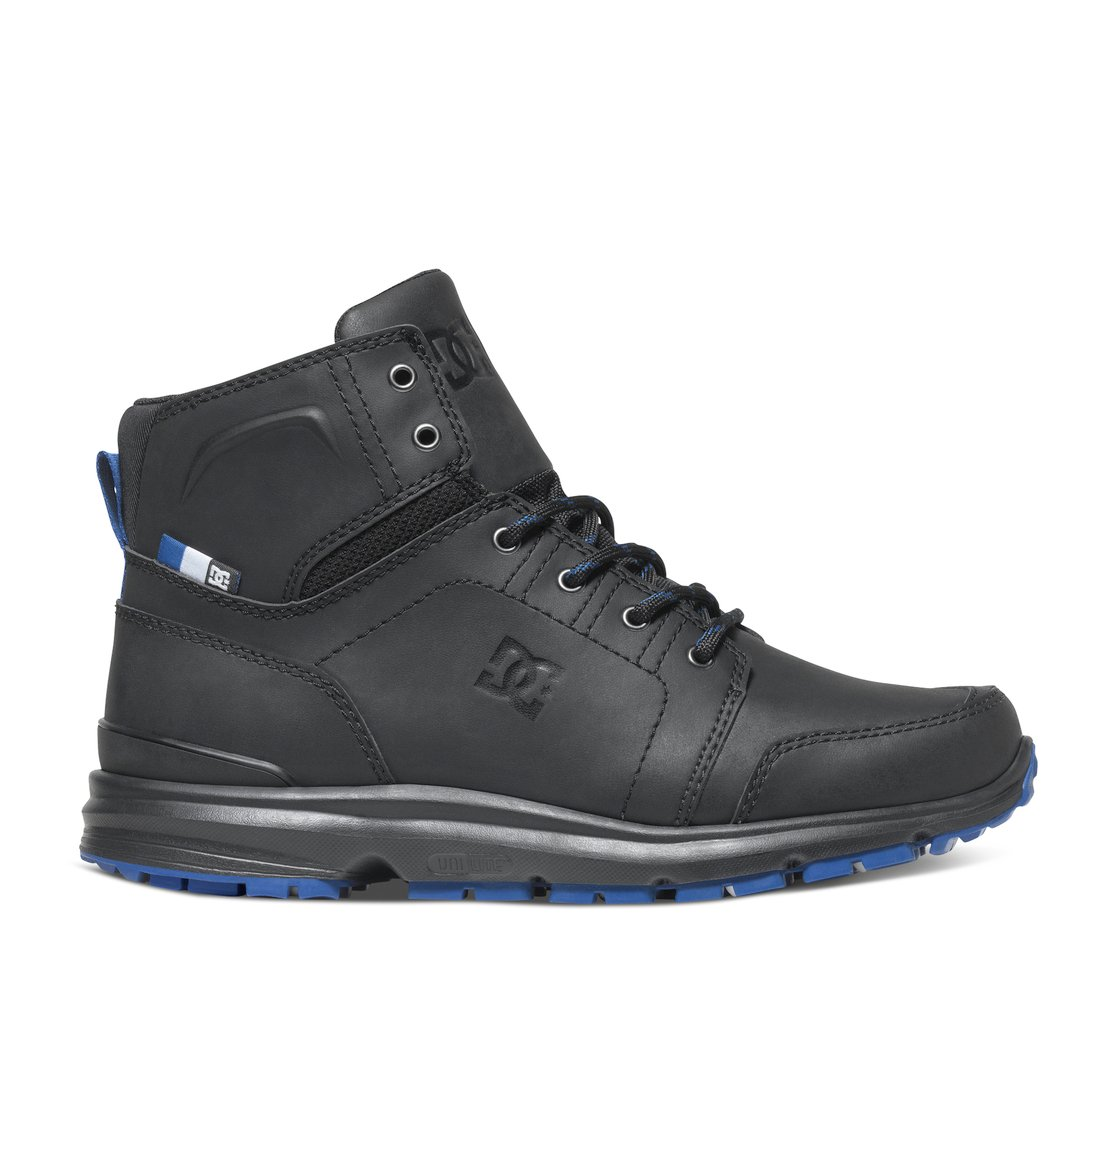 dc shoes s torstein mountain boots admb700008